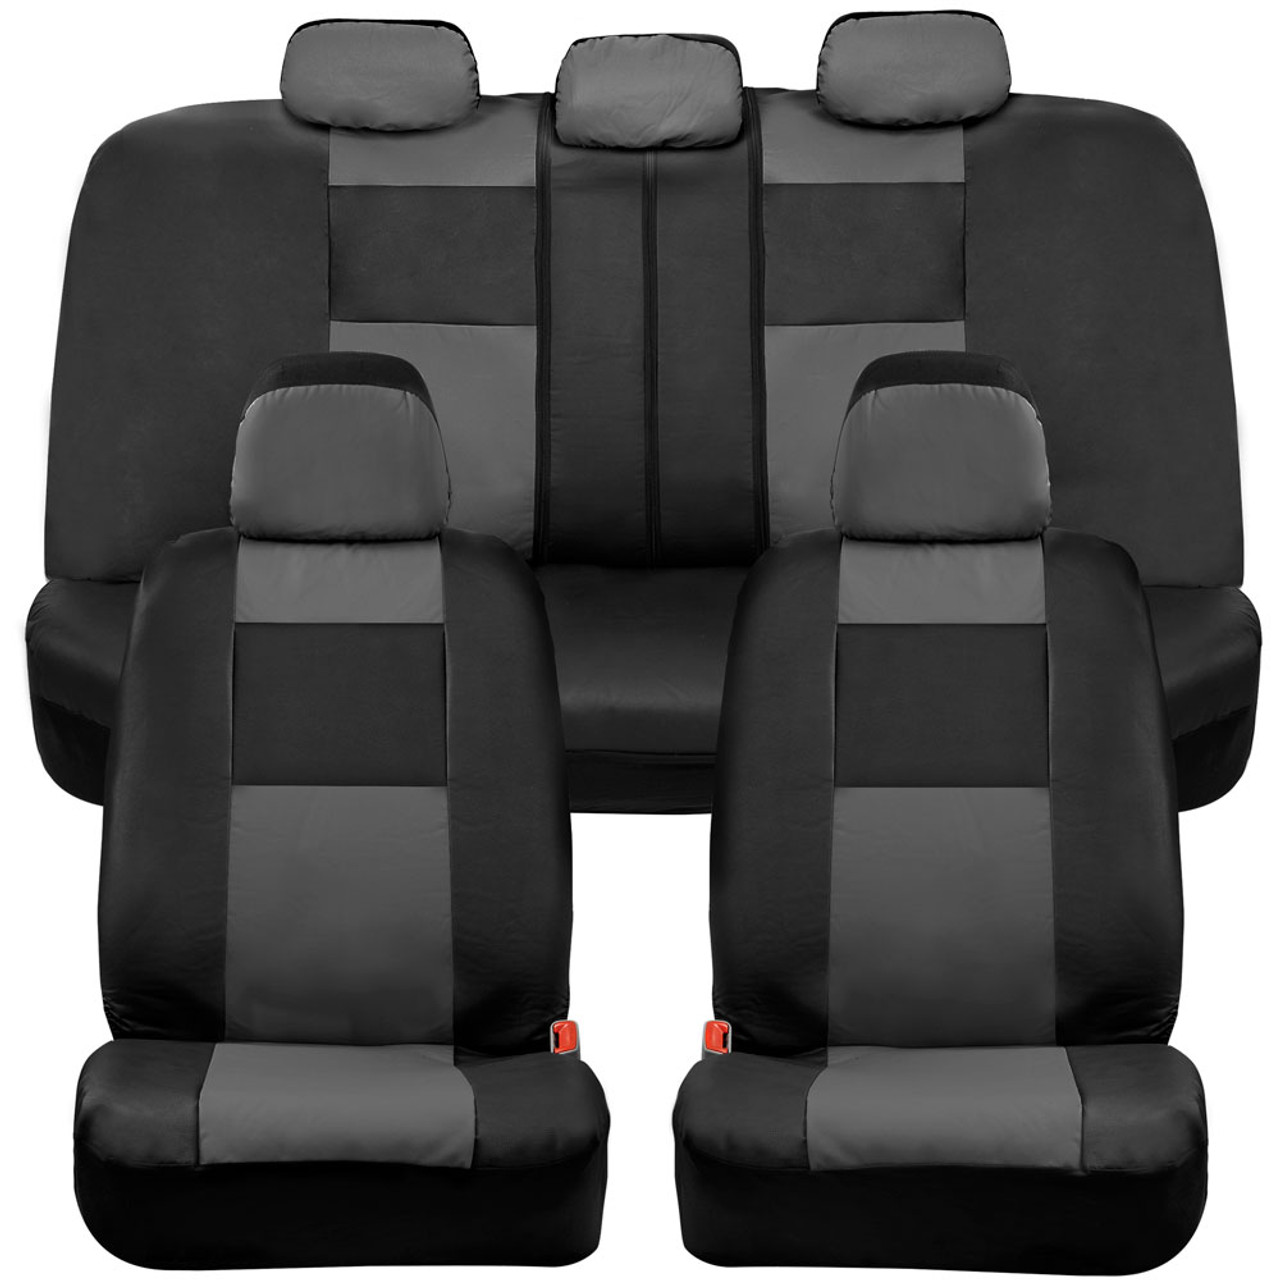 Washable Breathable 9 Part Gray /& Black Colors Car Seat Covers Protect Set